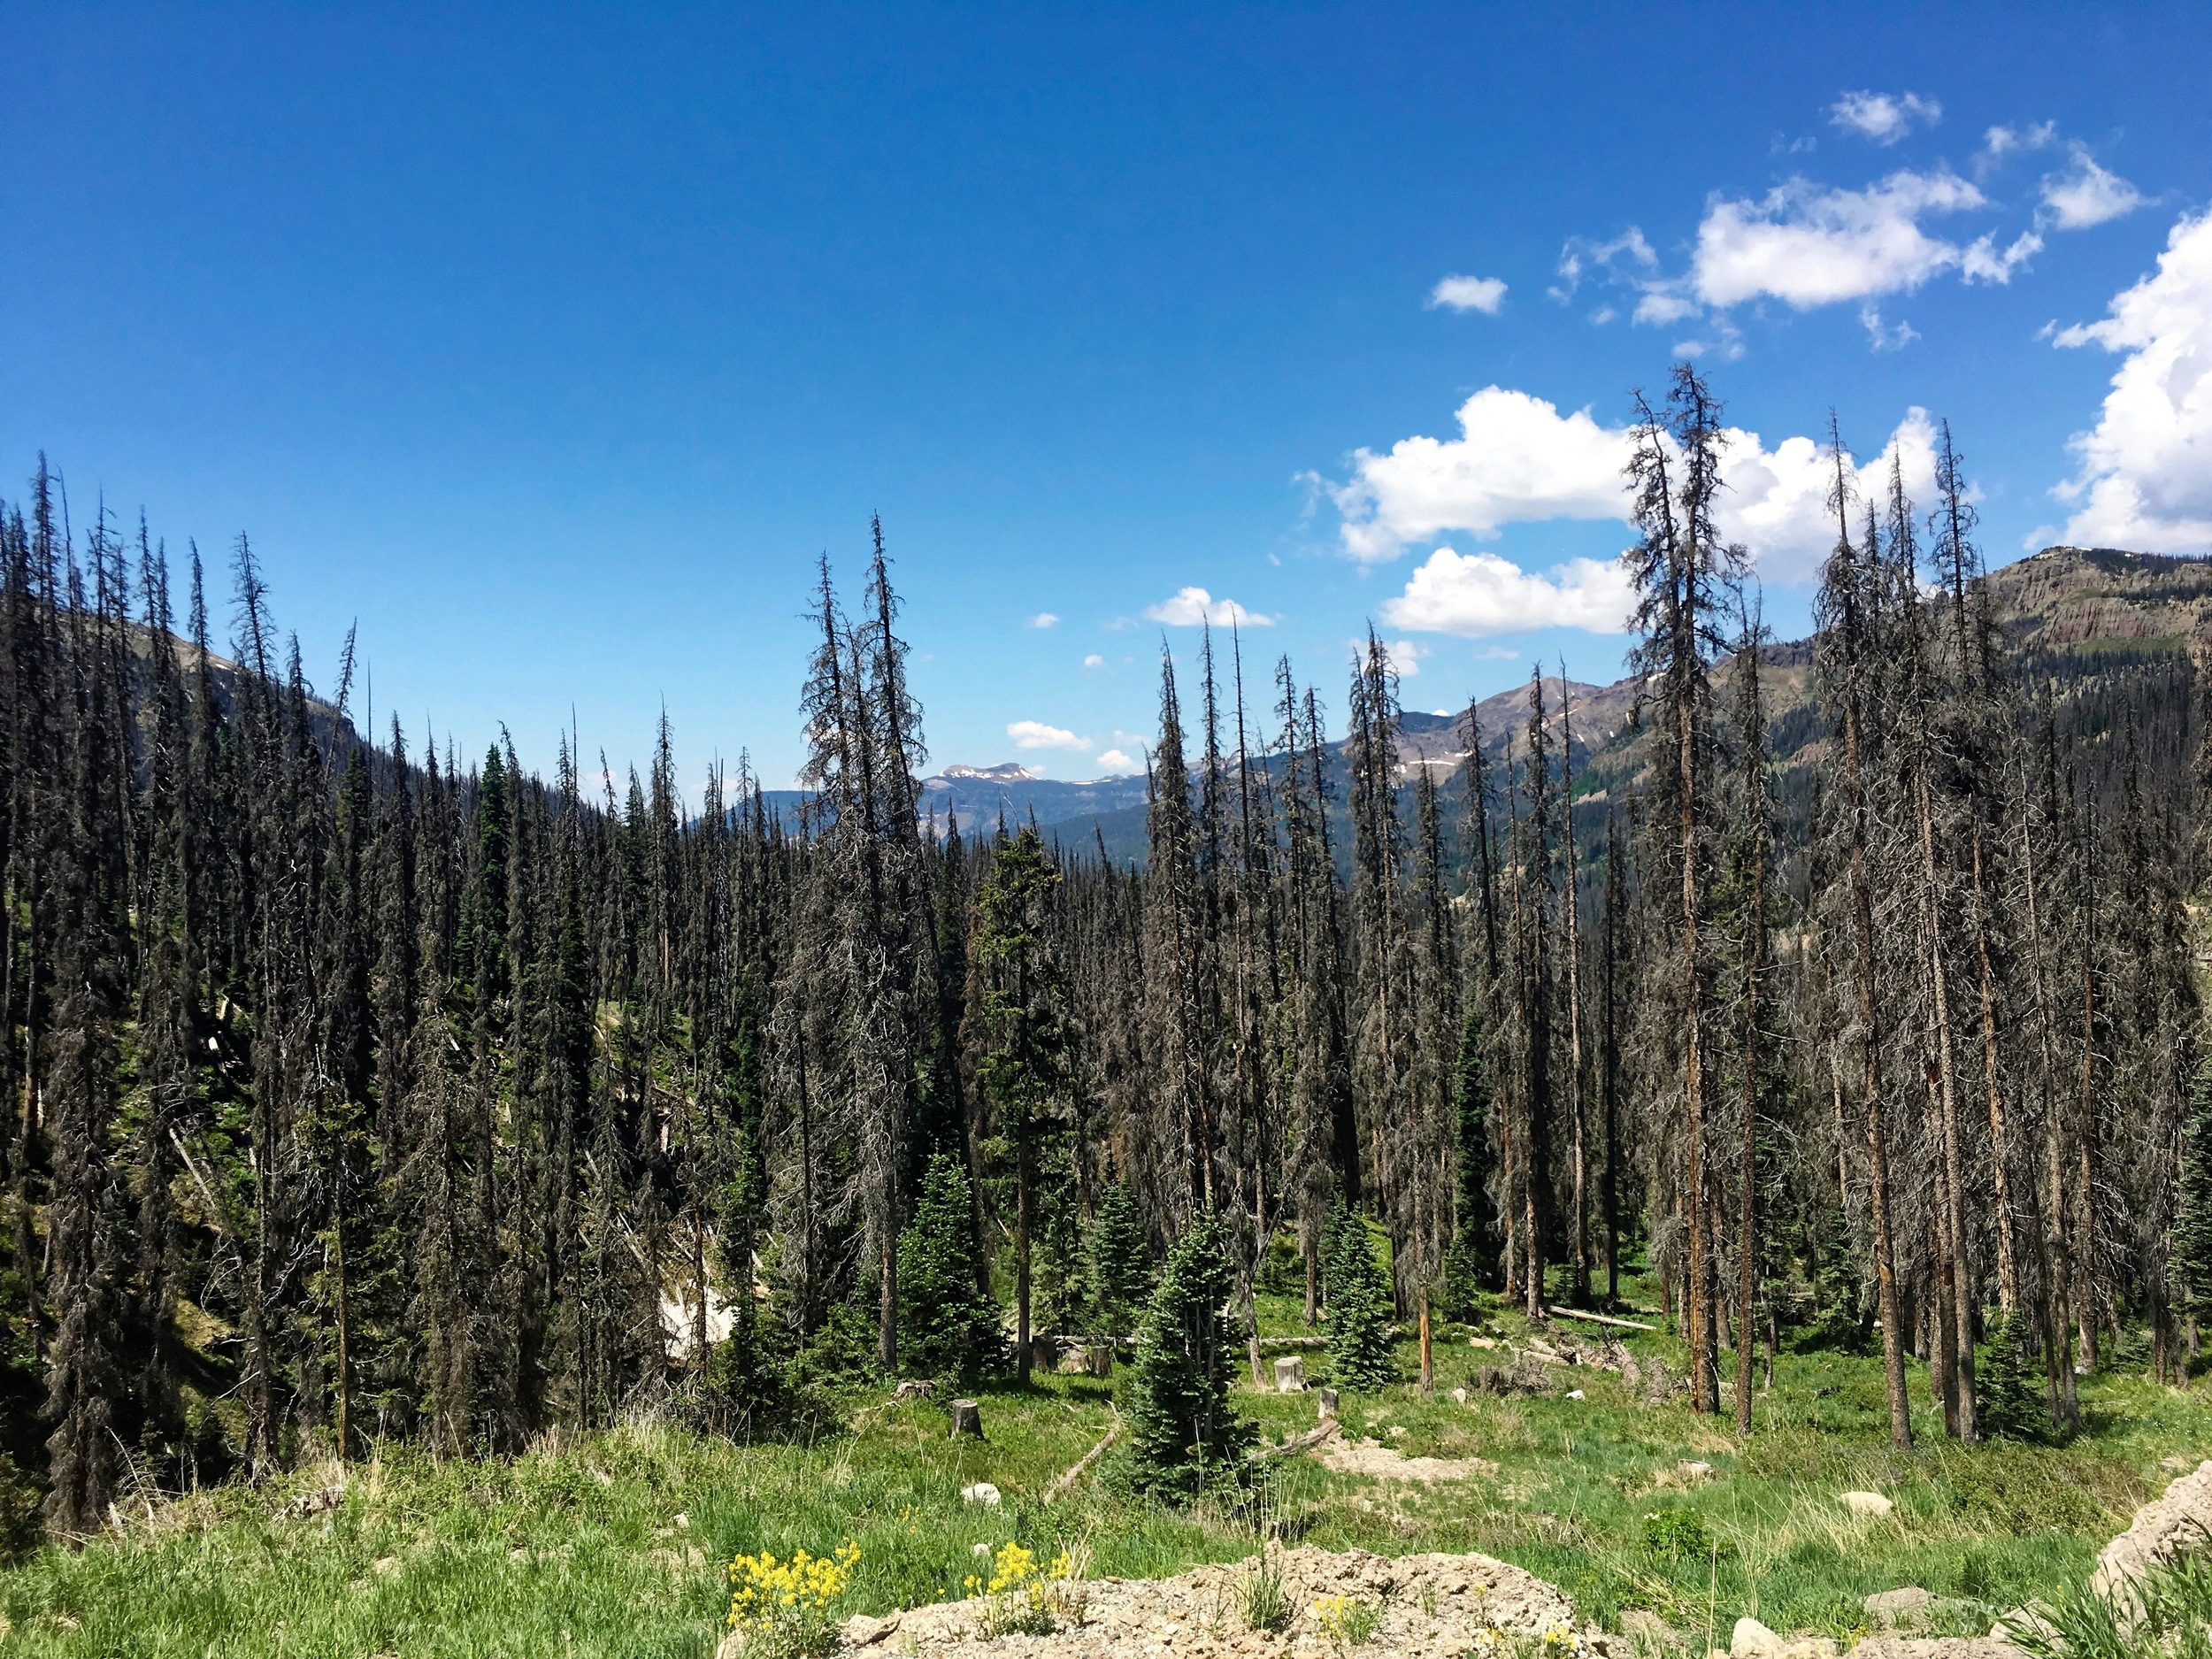 Beetle kill - another attribute of a warming climate, was particularly evident on the climb to Wolf Creek Summit.